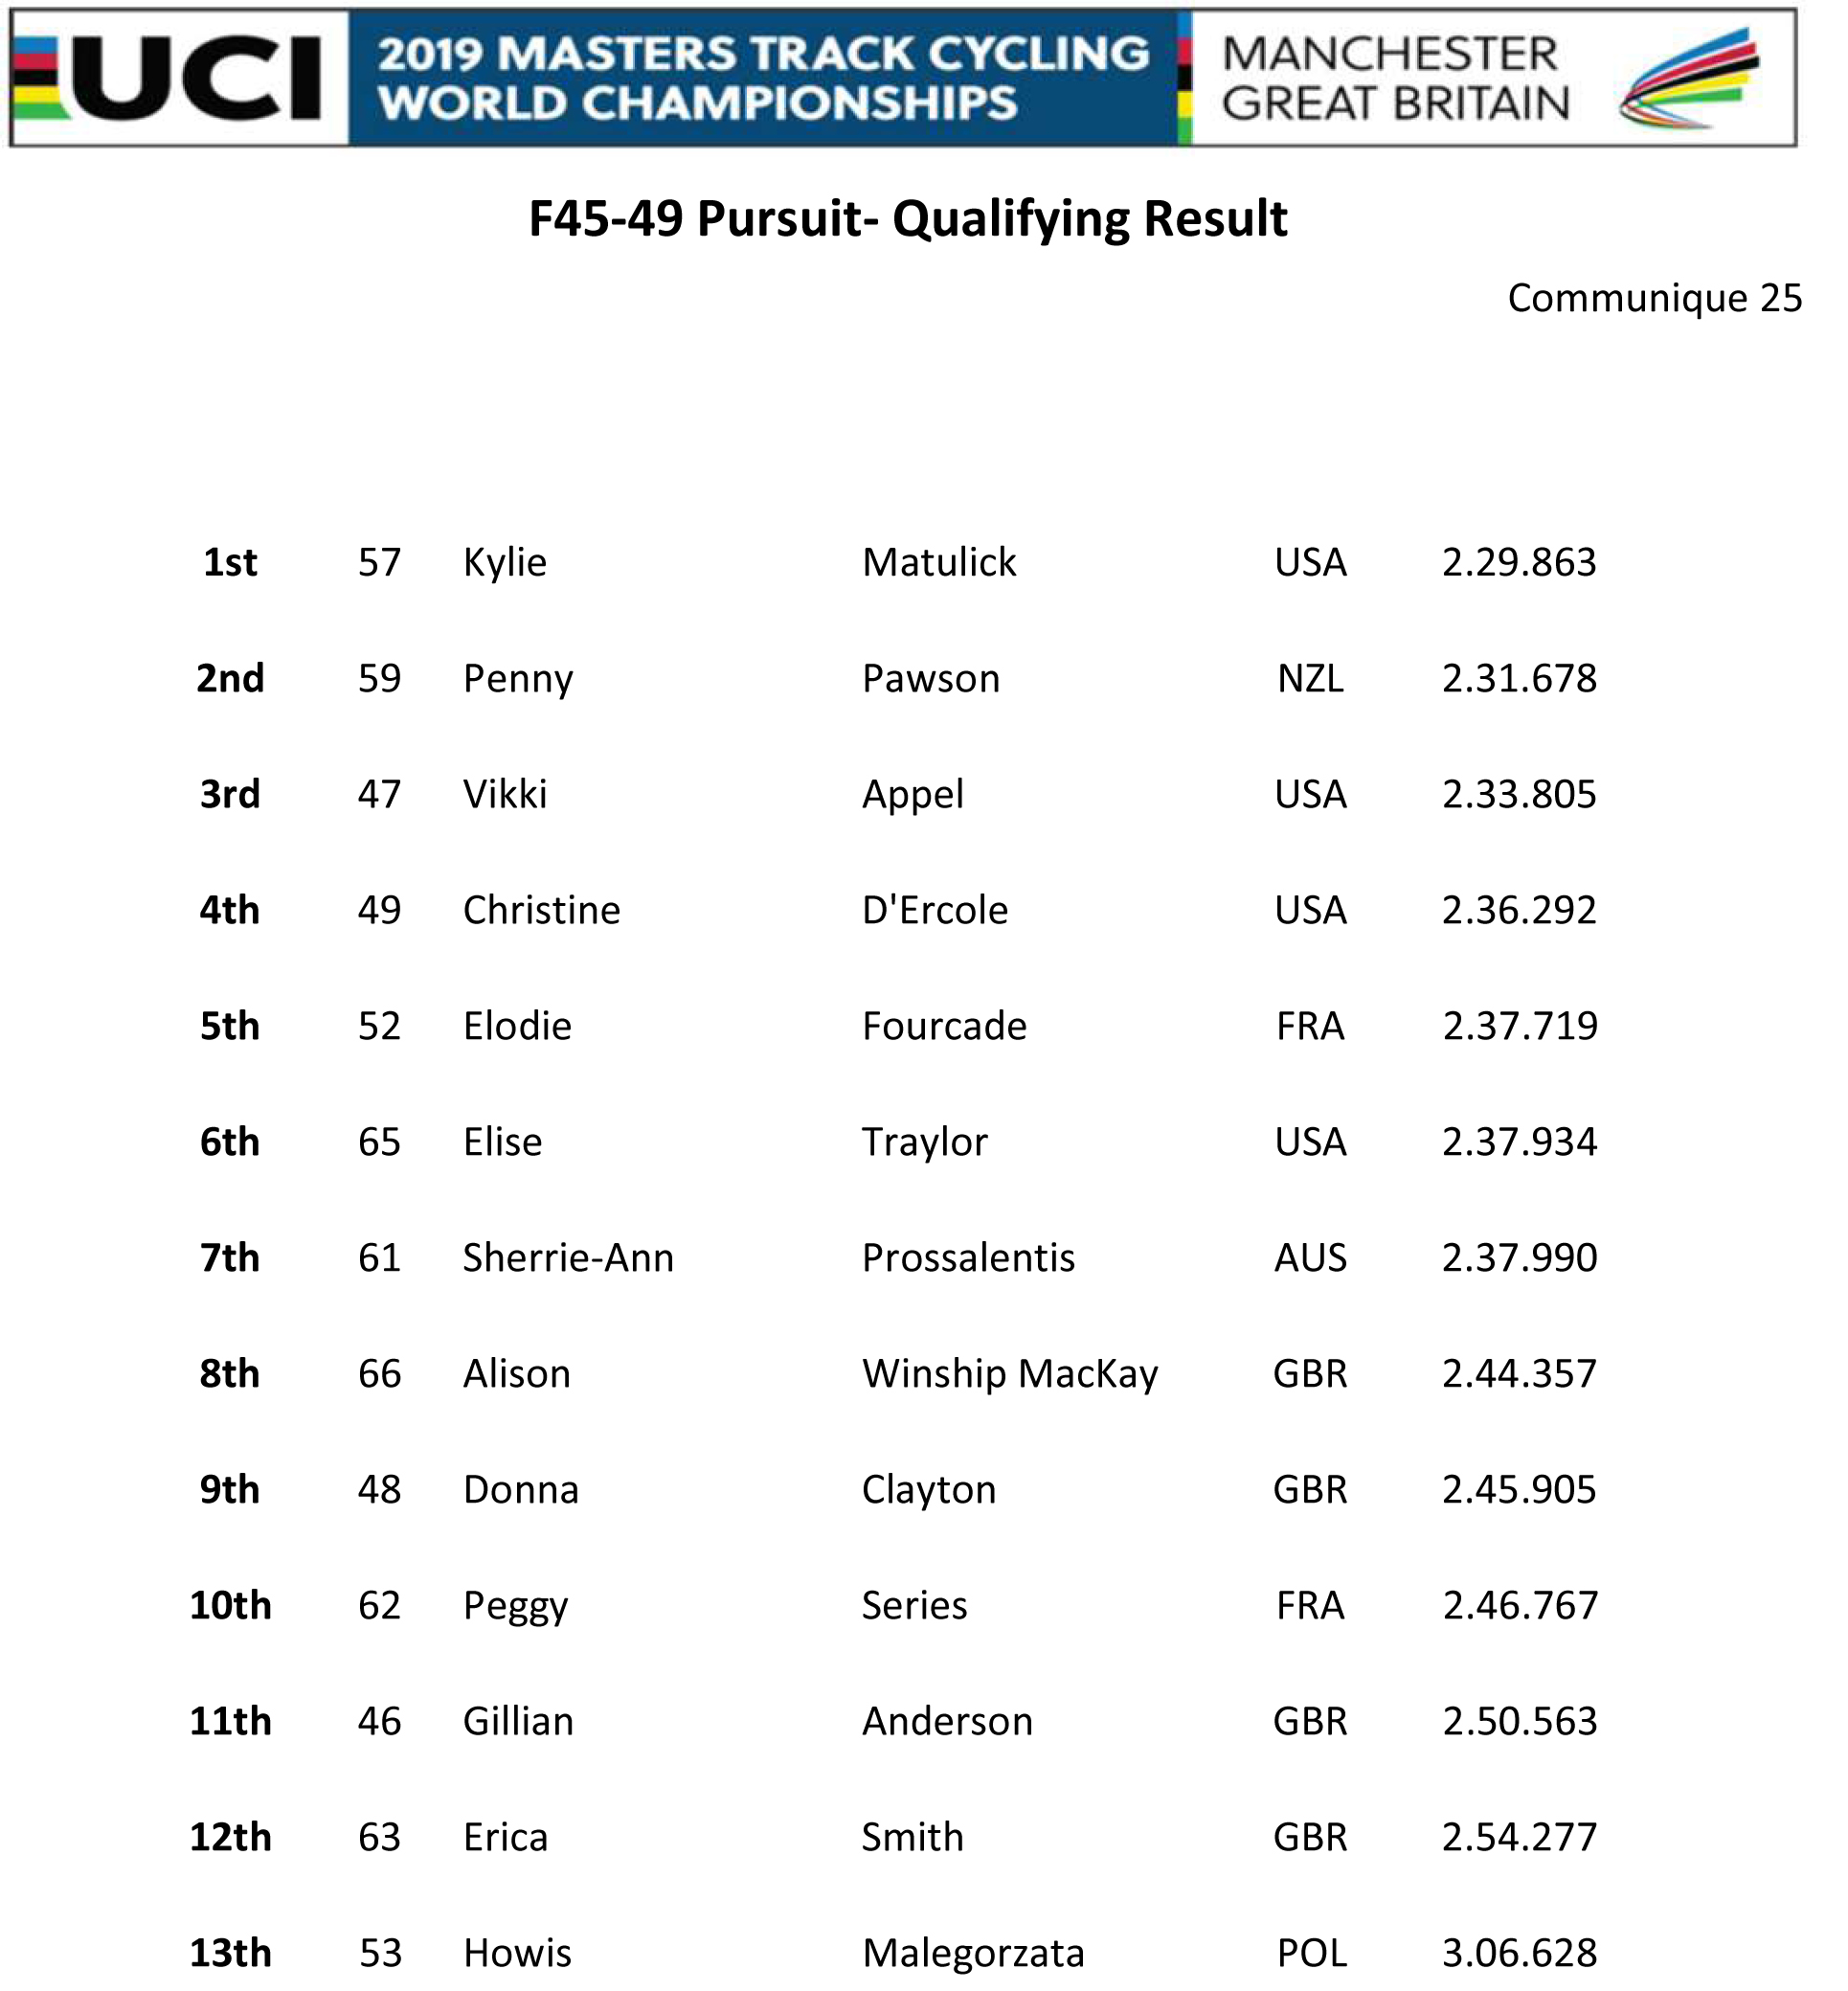 F4549 PURSUIT QUAL RESULT